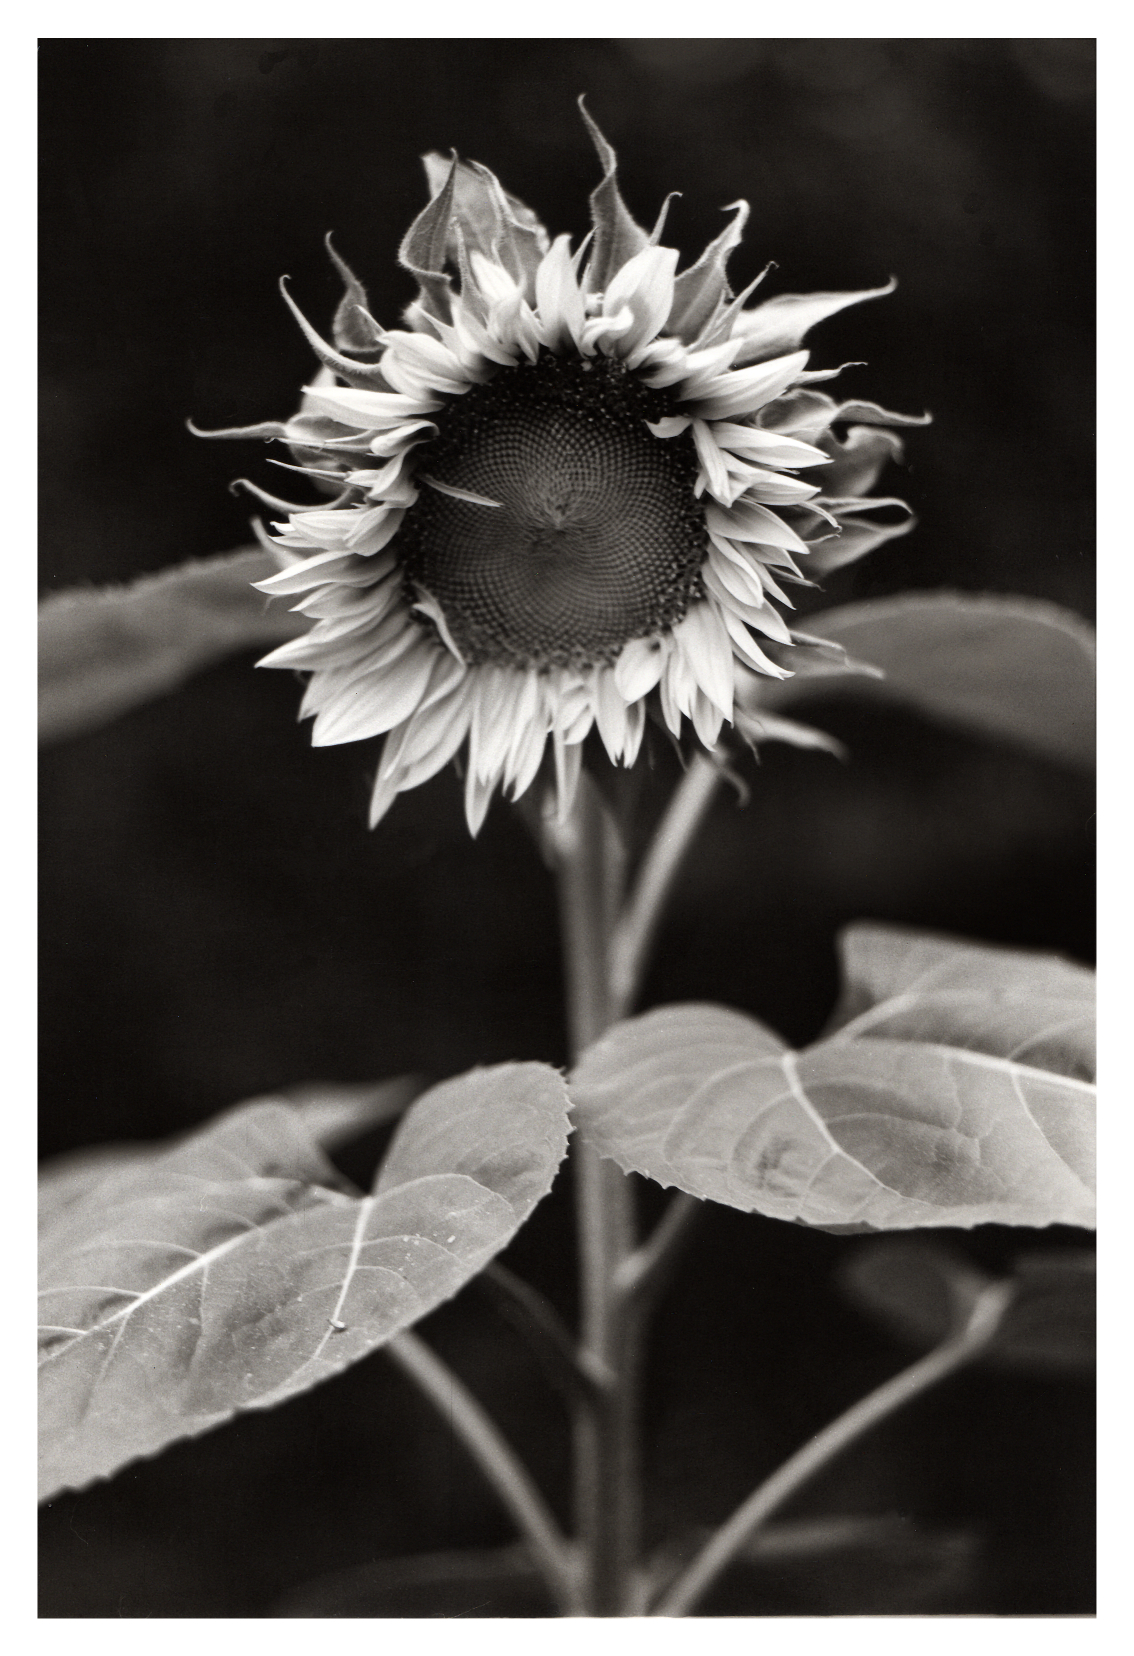 sunflower007